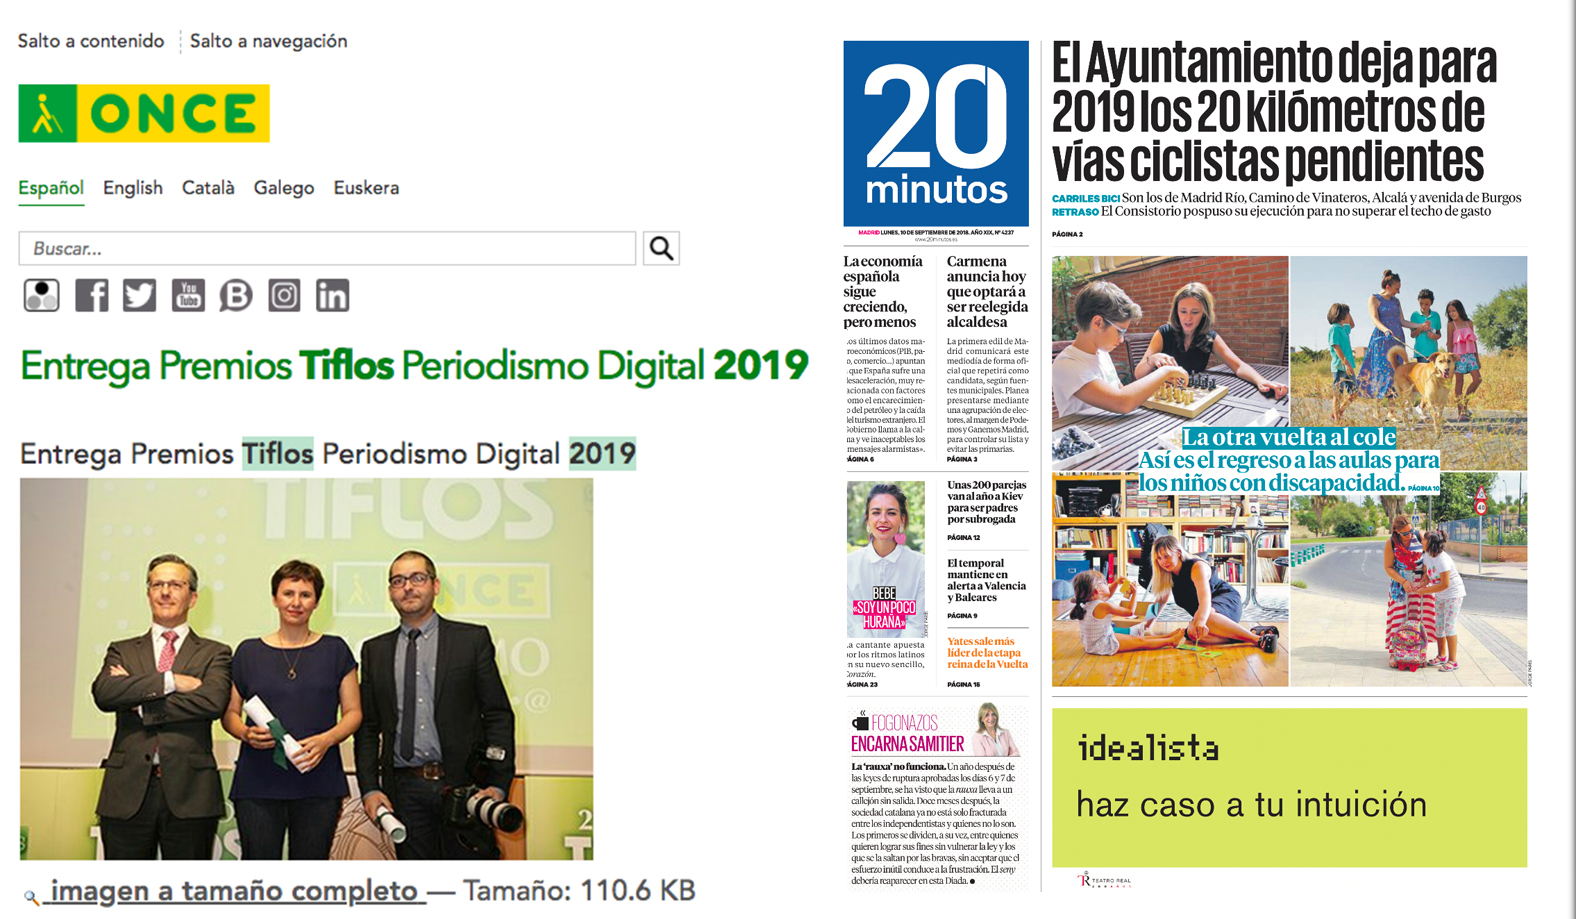 Premio Tiflos 2019 de Once. Categoria: Periodismo Digital.